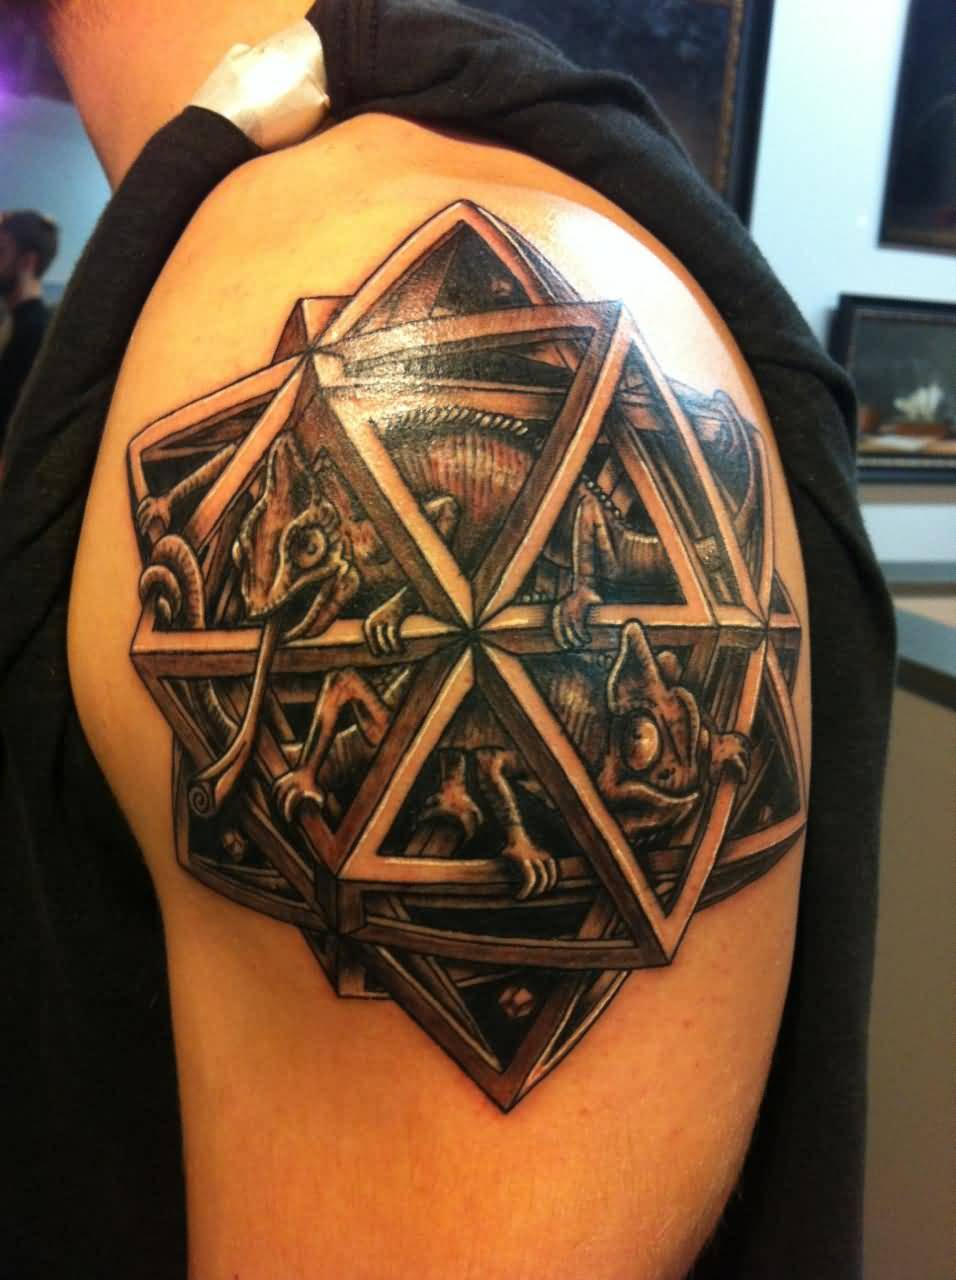 Men Shoulder Amazing And Nice Lizards In Escher Star Tattoo